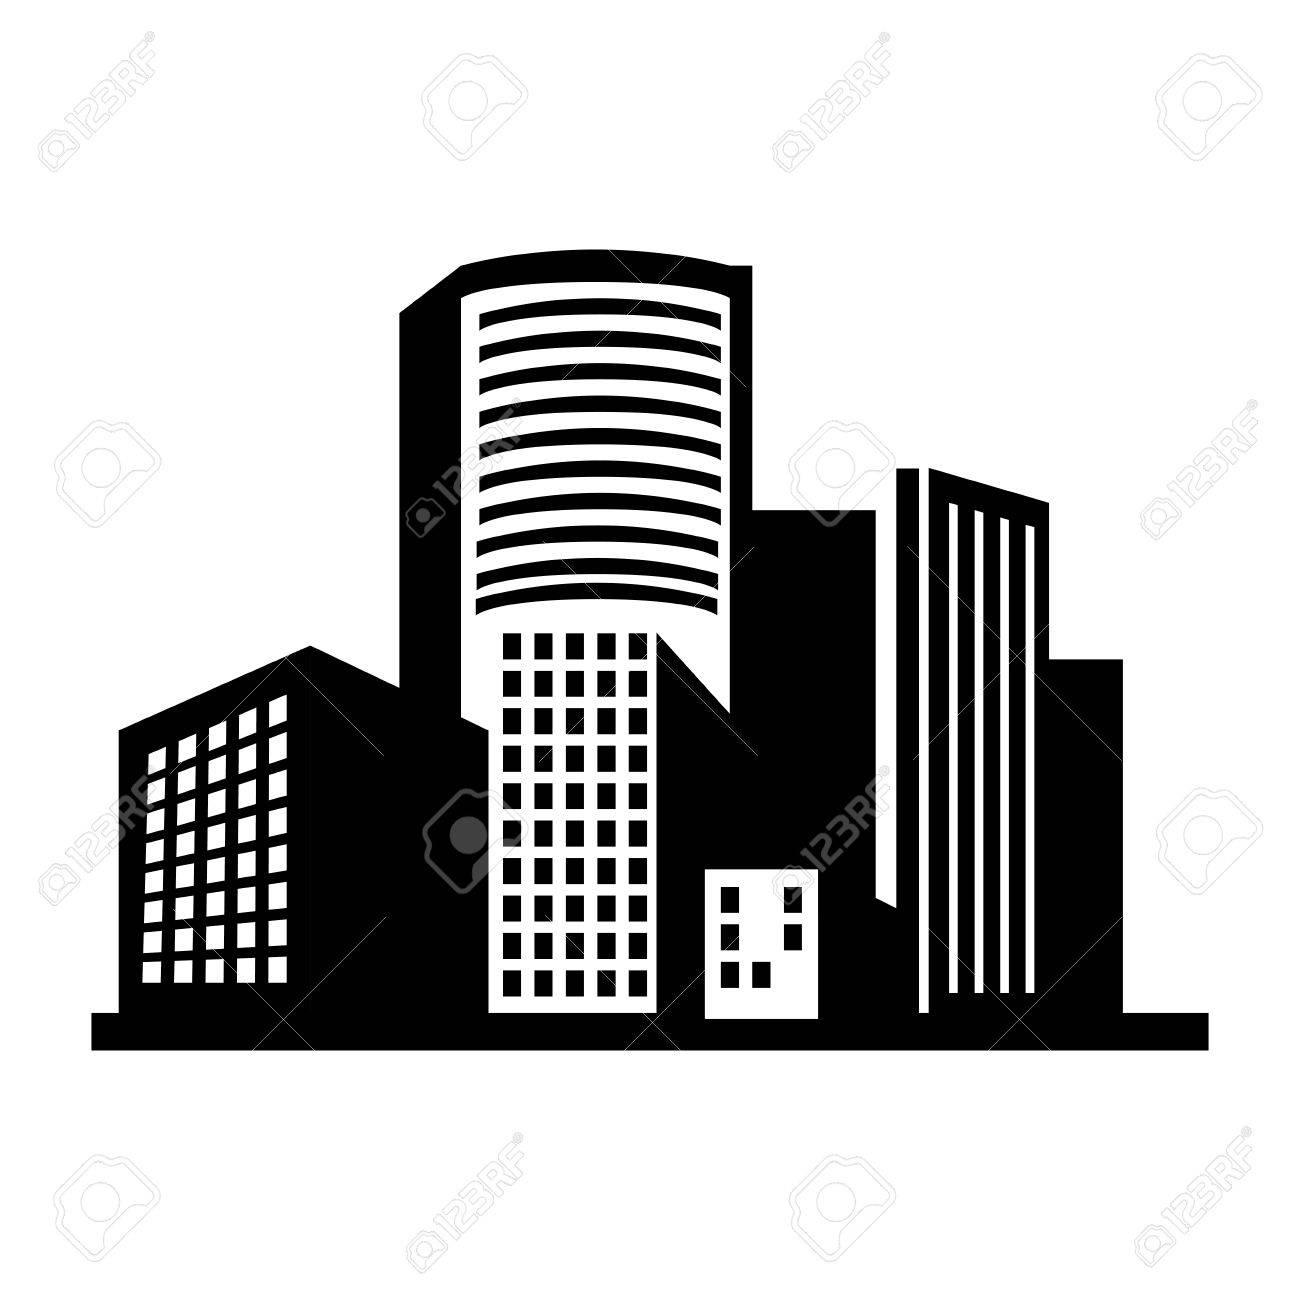 building structure silhouette window tower city dowtown corporate rh 123rf com vector building change detection vector building photoshop